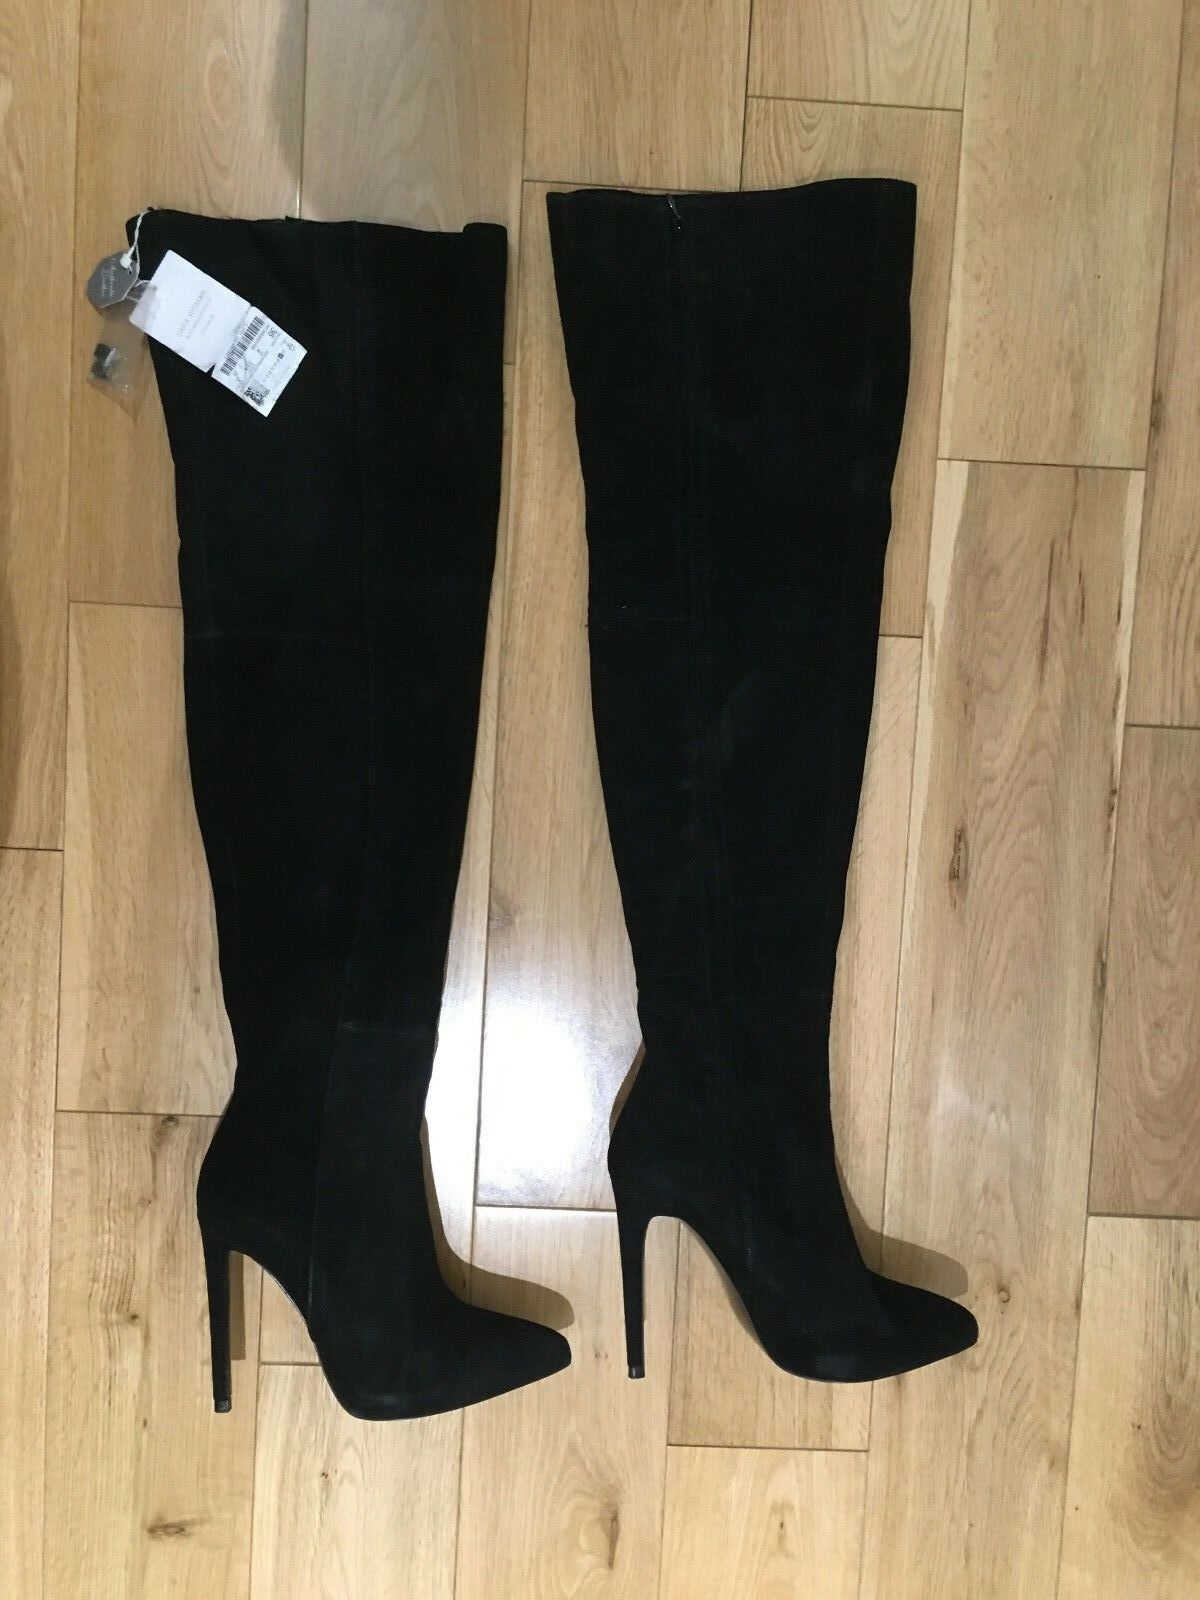 NWOB Zara Black Thigh High Boots EU 36 36 36 291256